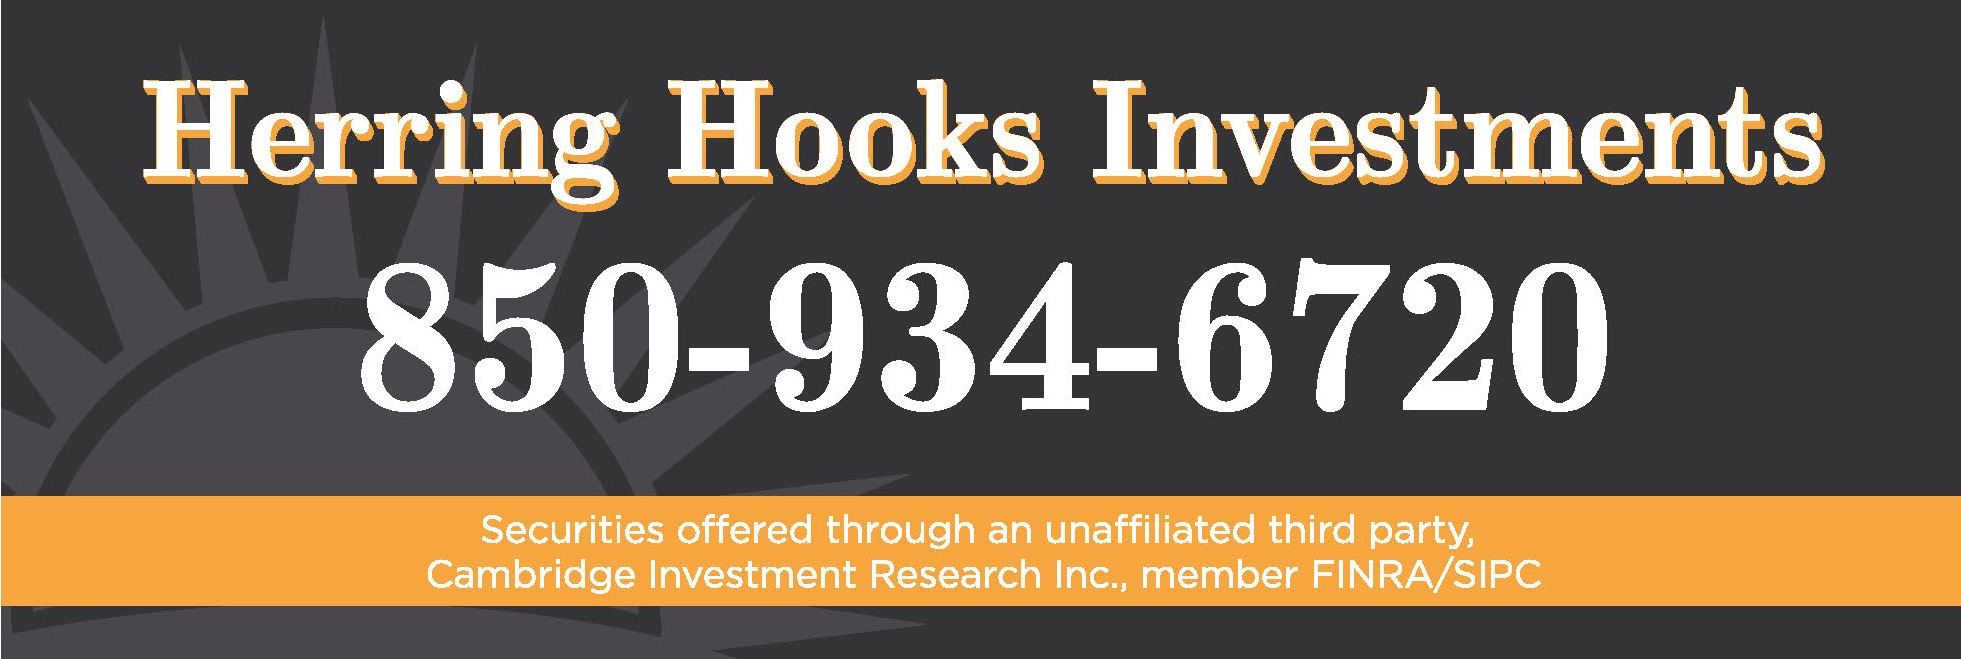 Herring Hooks Investments